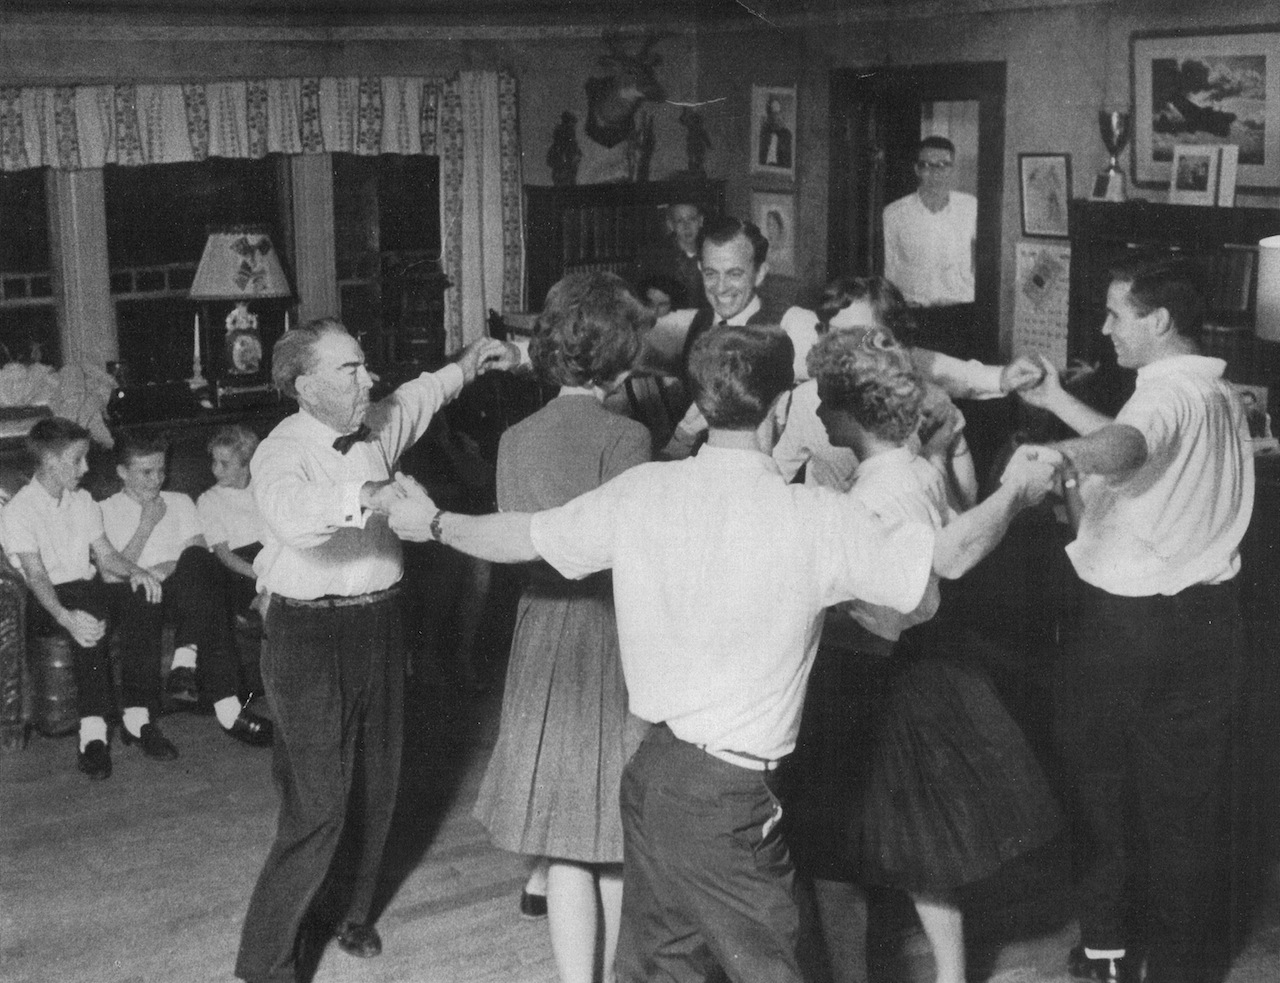 Square Dance at Bascom Lamer Lunsford's home in Madison County, NC (1960s)  The Ring Shout and the Cakewalk